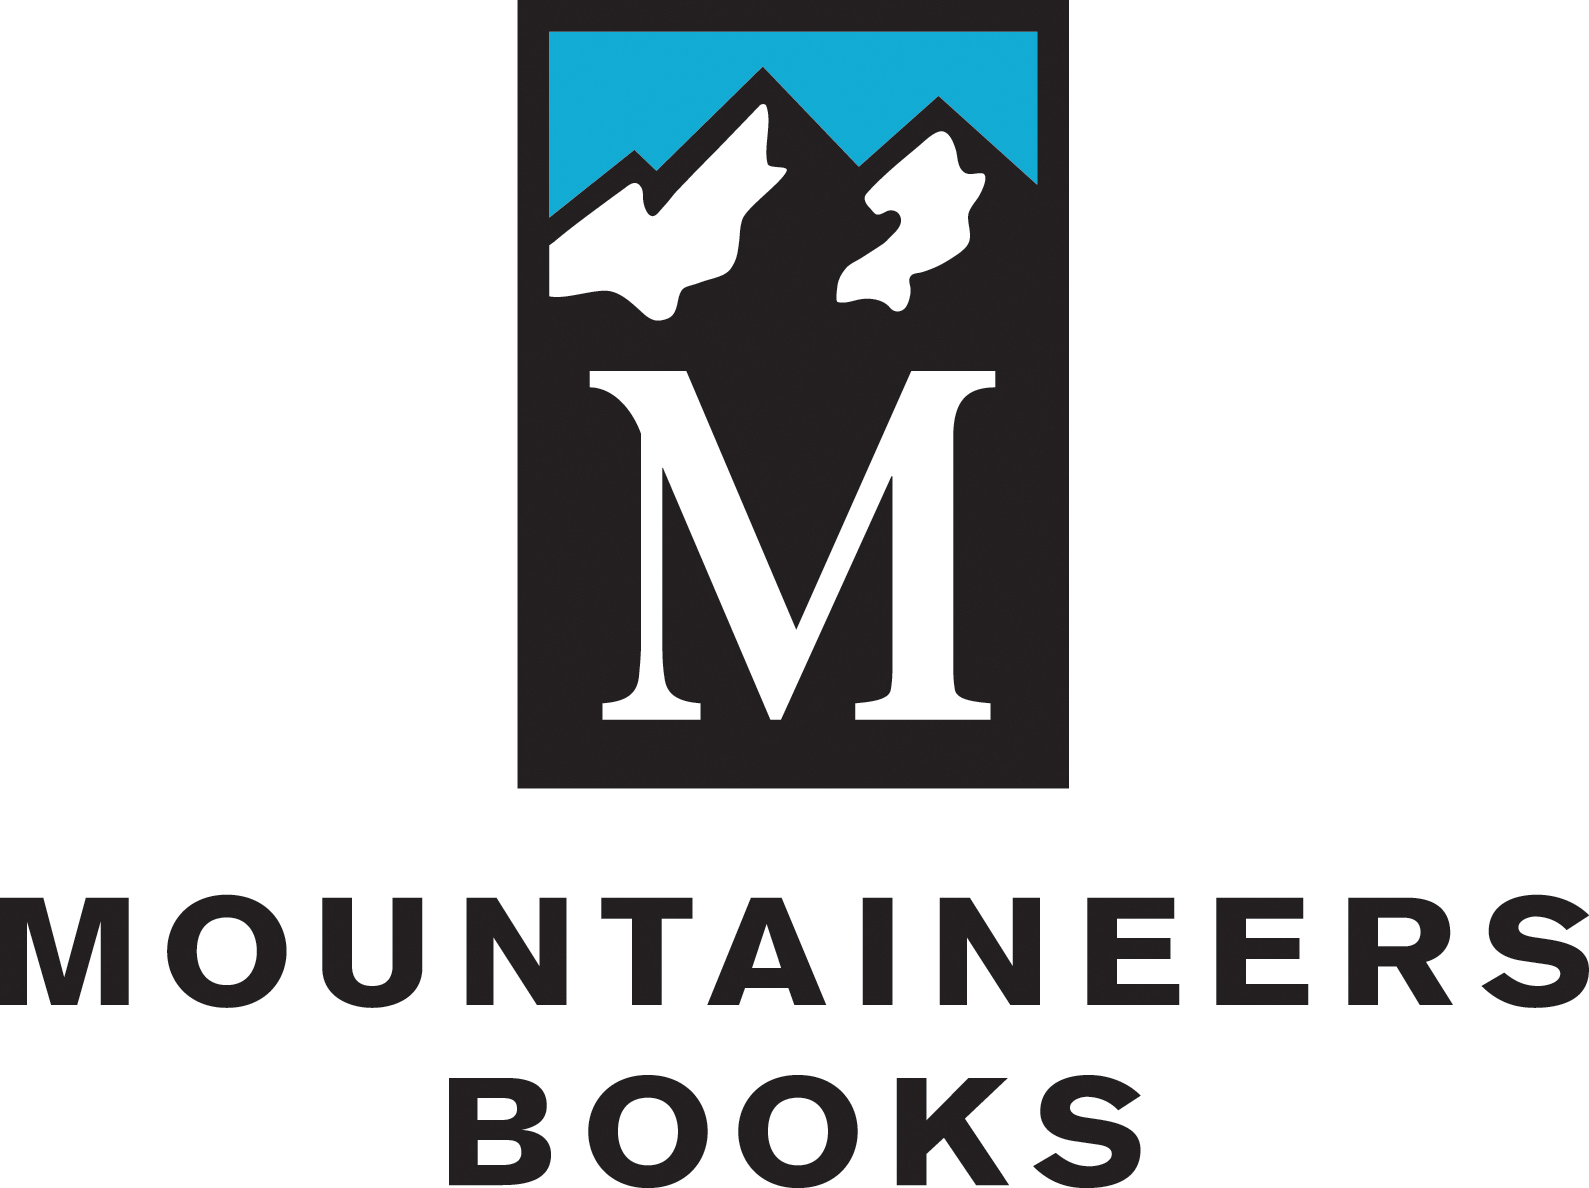 Mountaineers Bookstore Logo